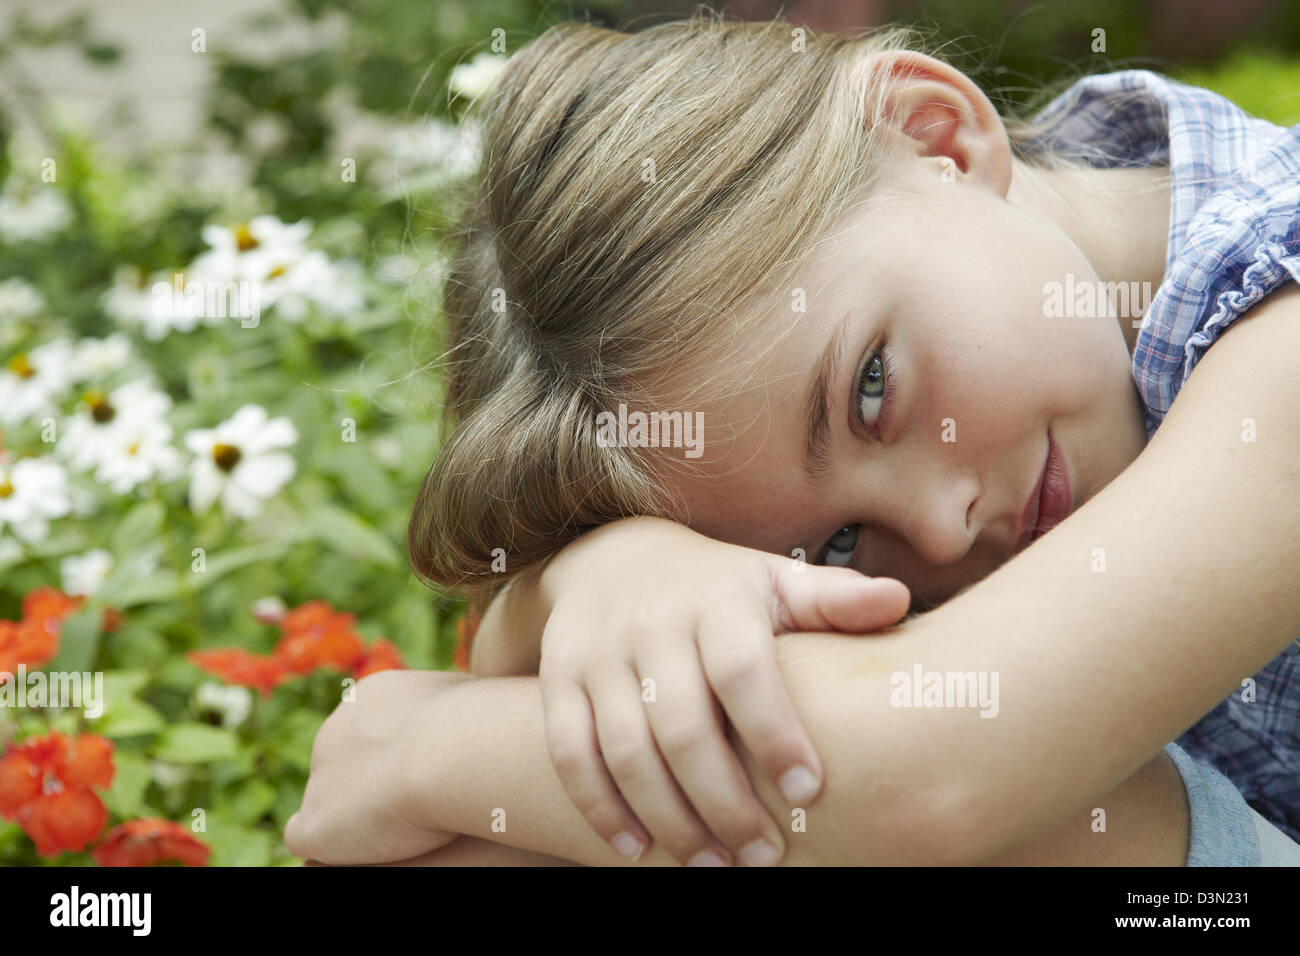 7 year old girl hugging her knees - Stock Image